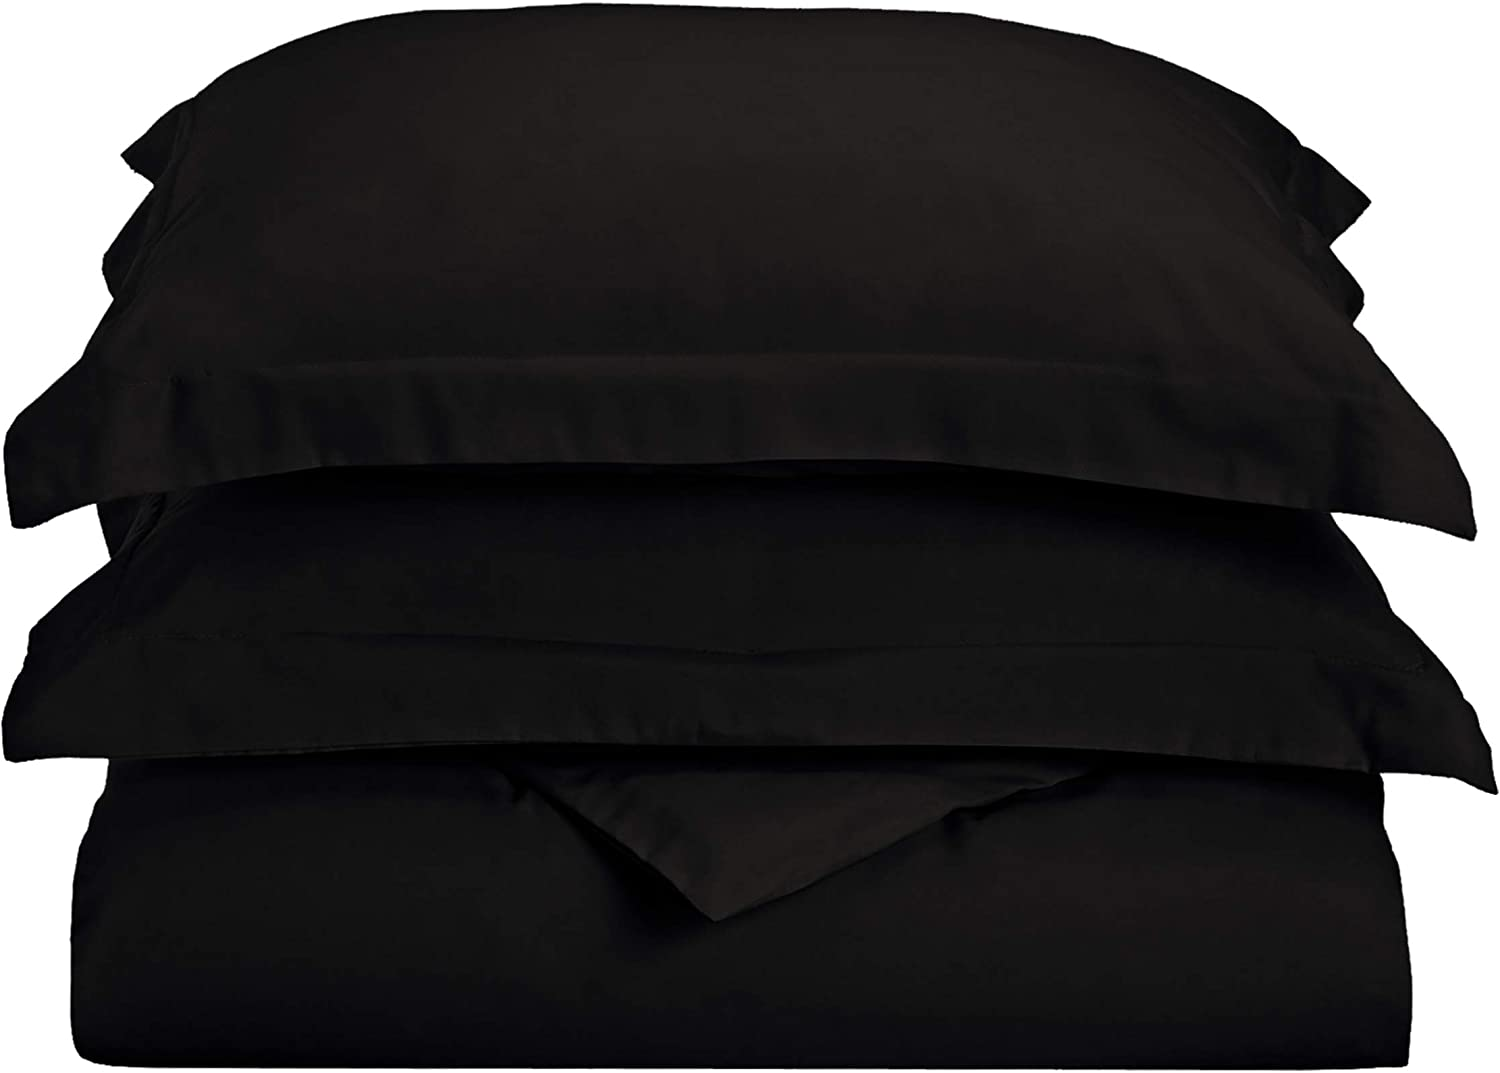 White Silky Soft and Luxurious Bedding Superior 1500 Series Premium Quality 100/% Brushed Soft Microfiber Duvet Cover Set with Pillow Shams Wrinkle and Stain Resistant Full//Queen